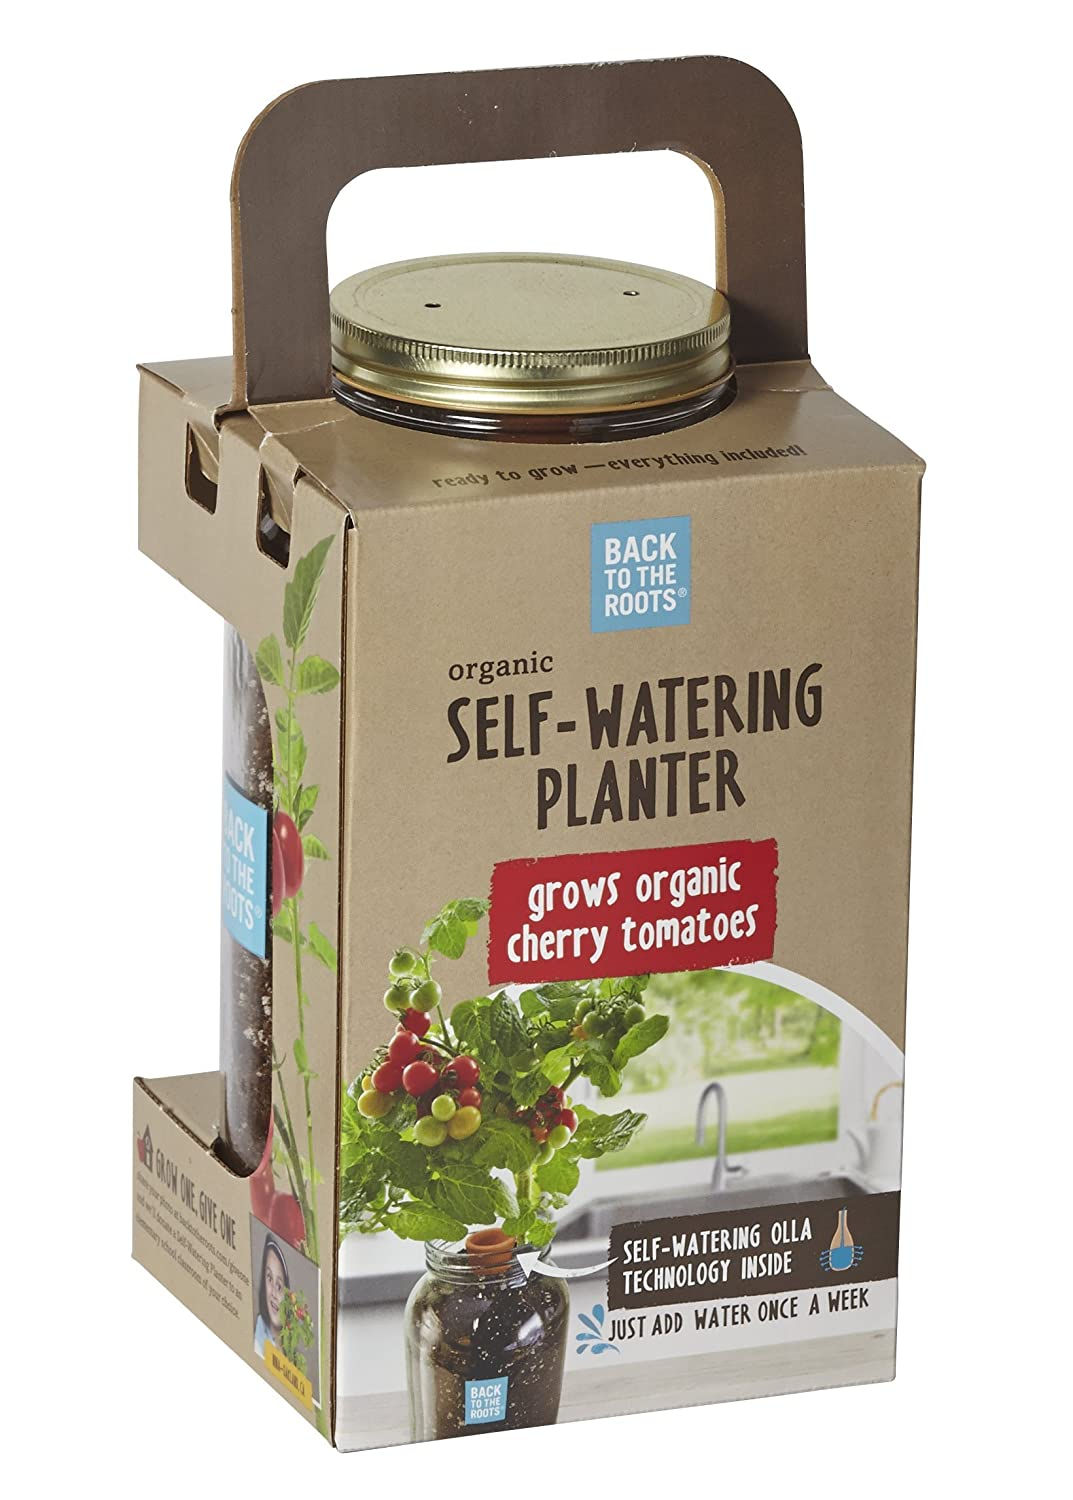 amazon com back to the roots self watering planter tomato